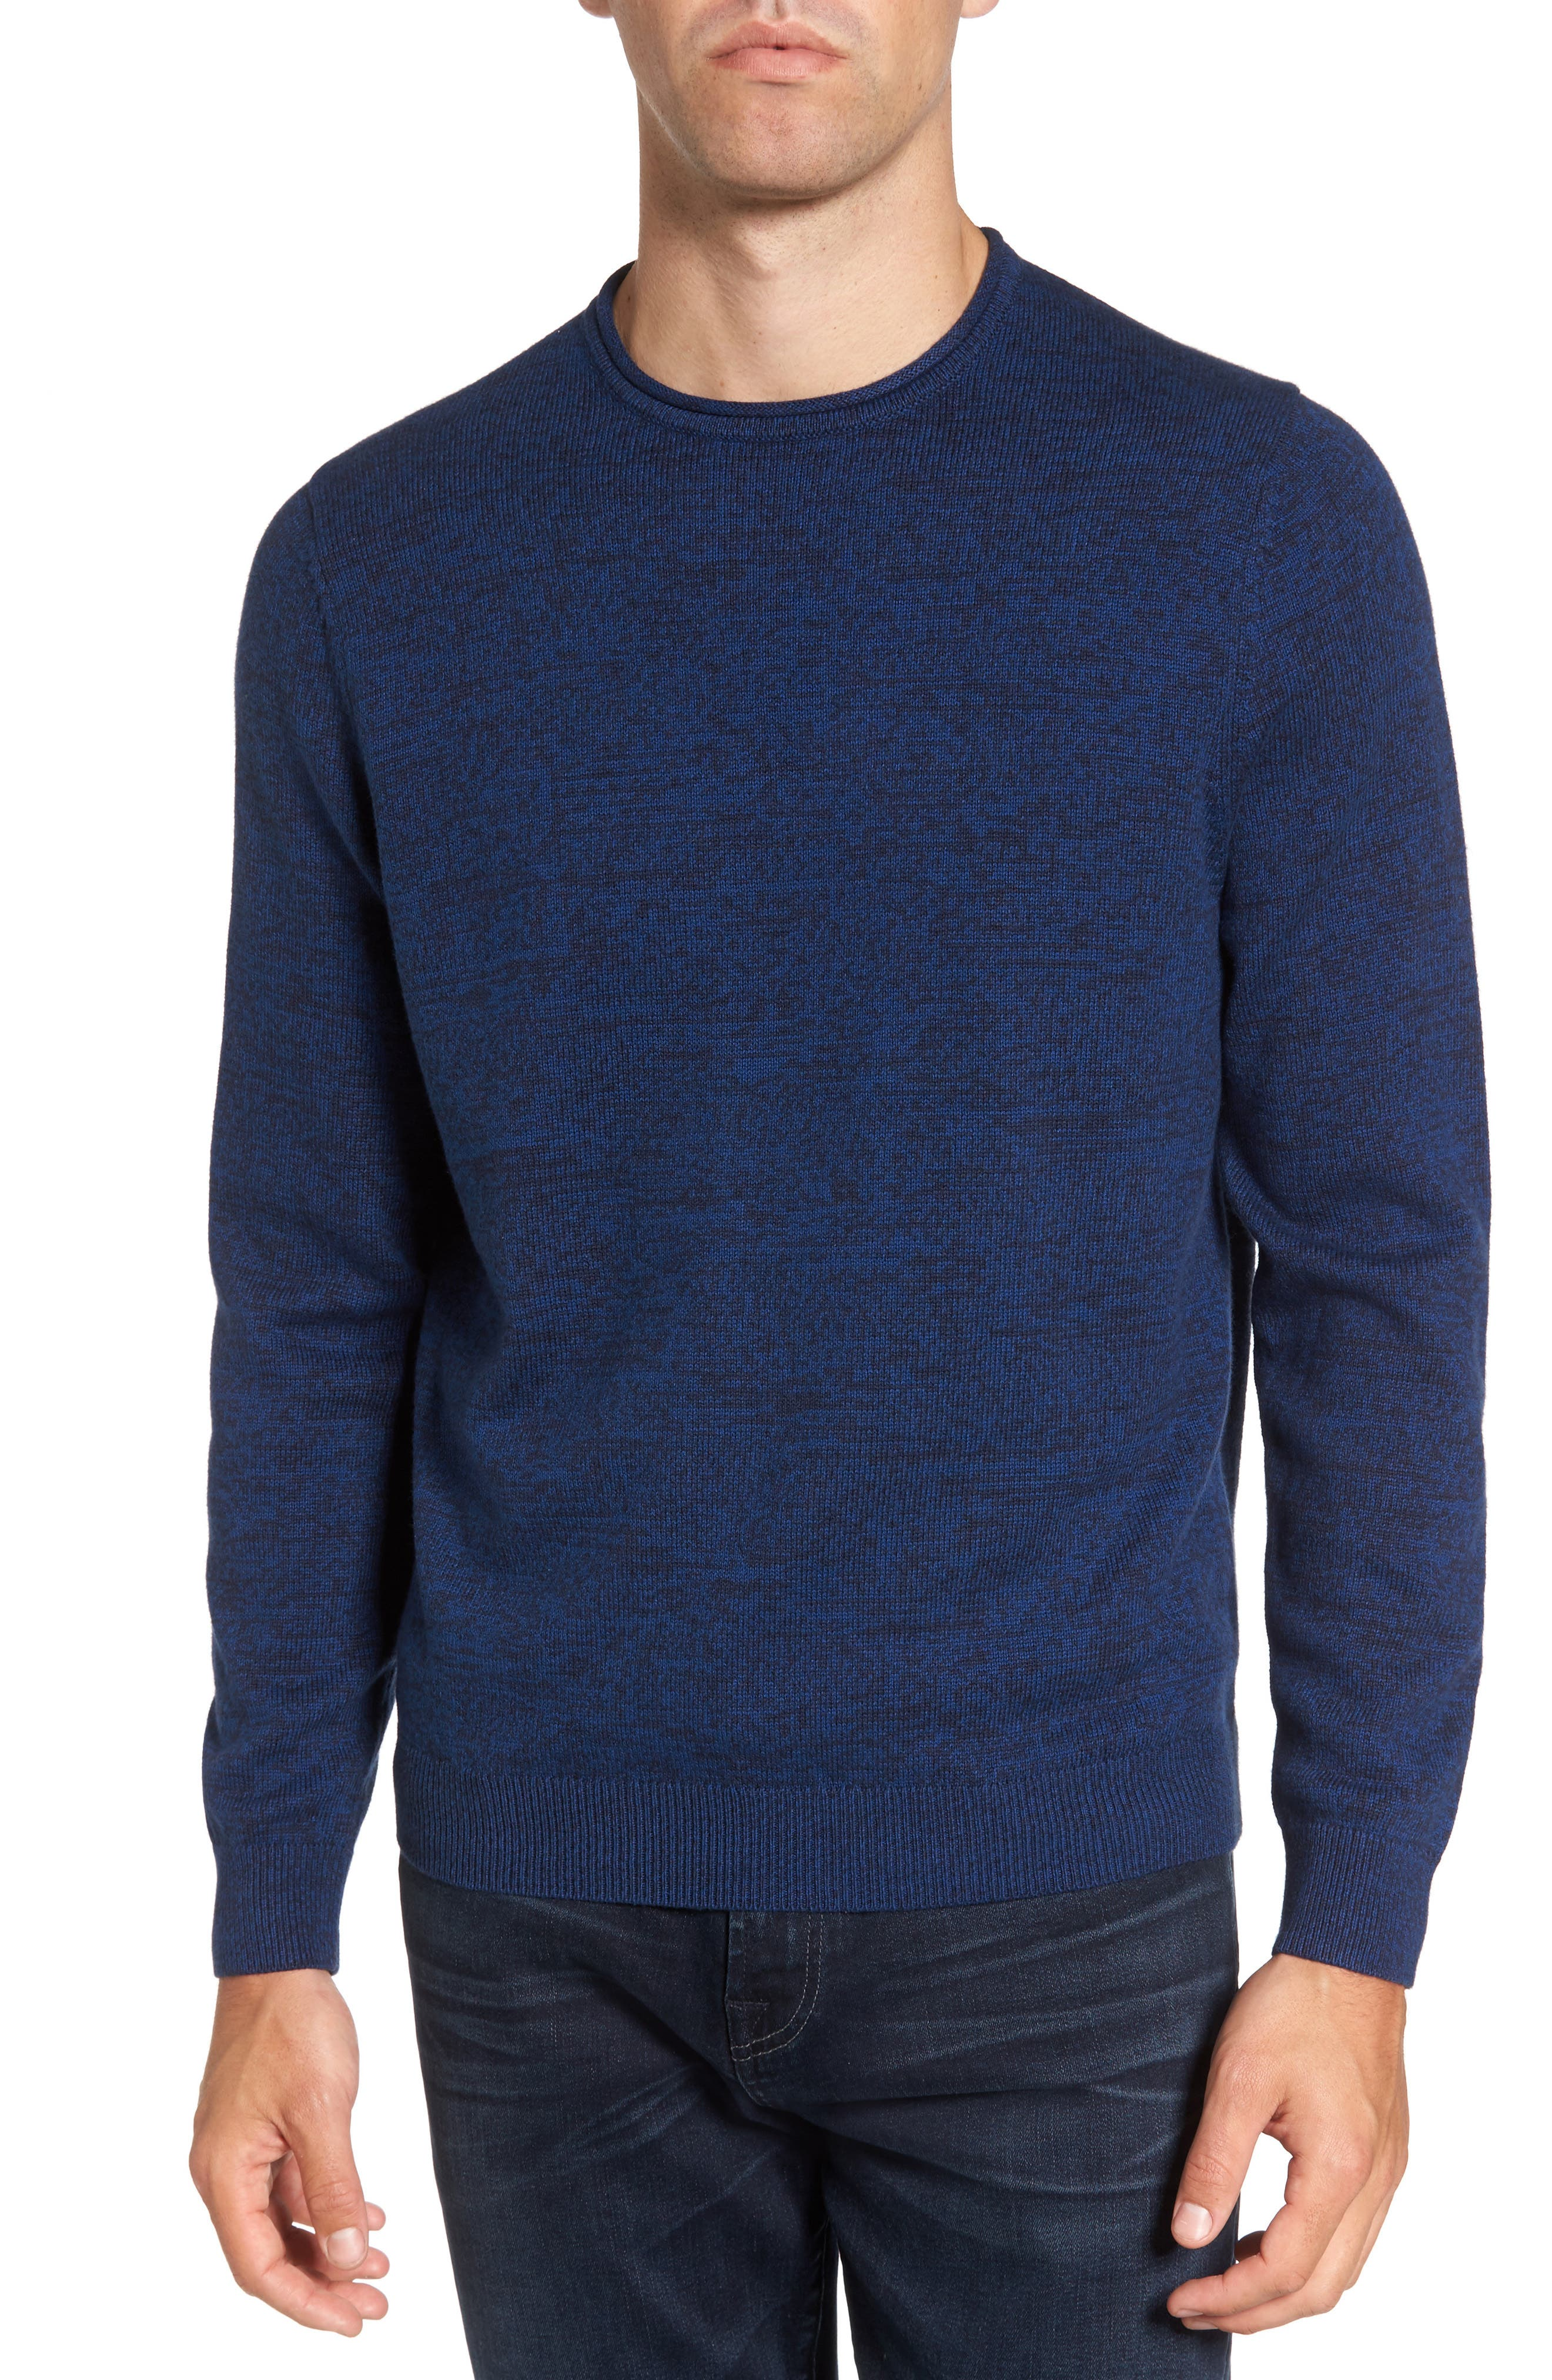 Alternate Image 1 Selected - Nordstrom Men's Shop Cotton & Cashmere Roll Neck Sweater